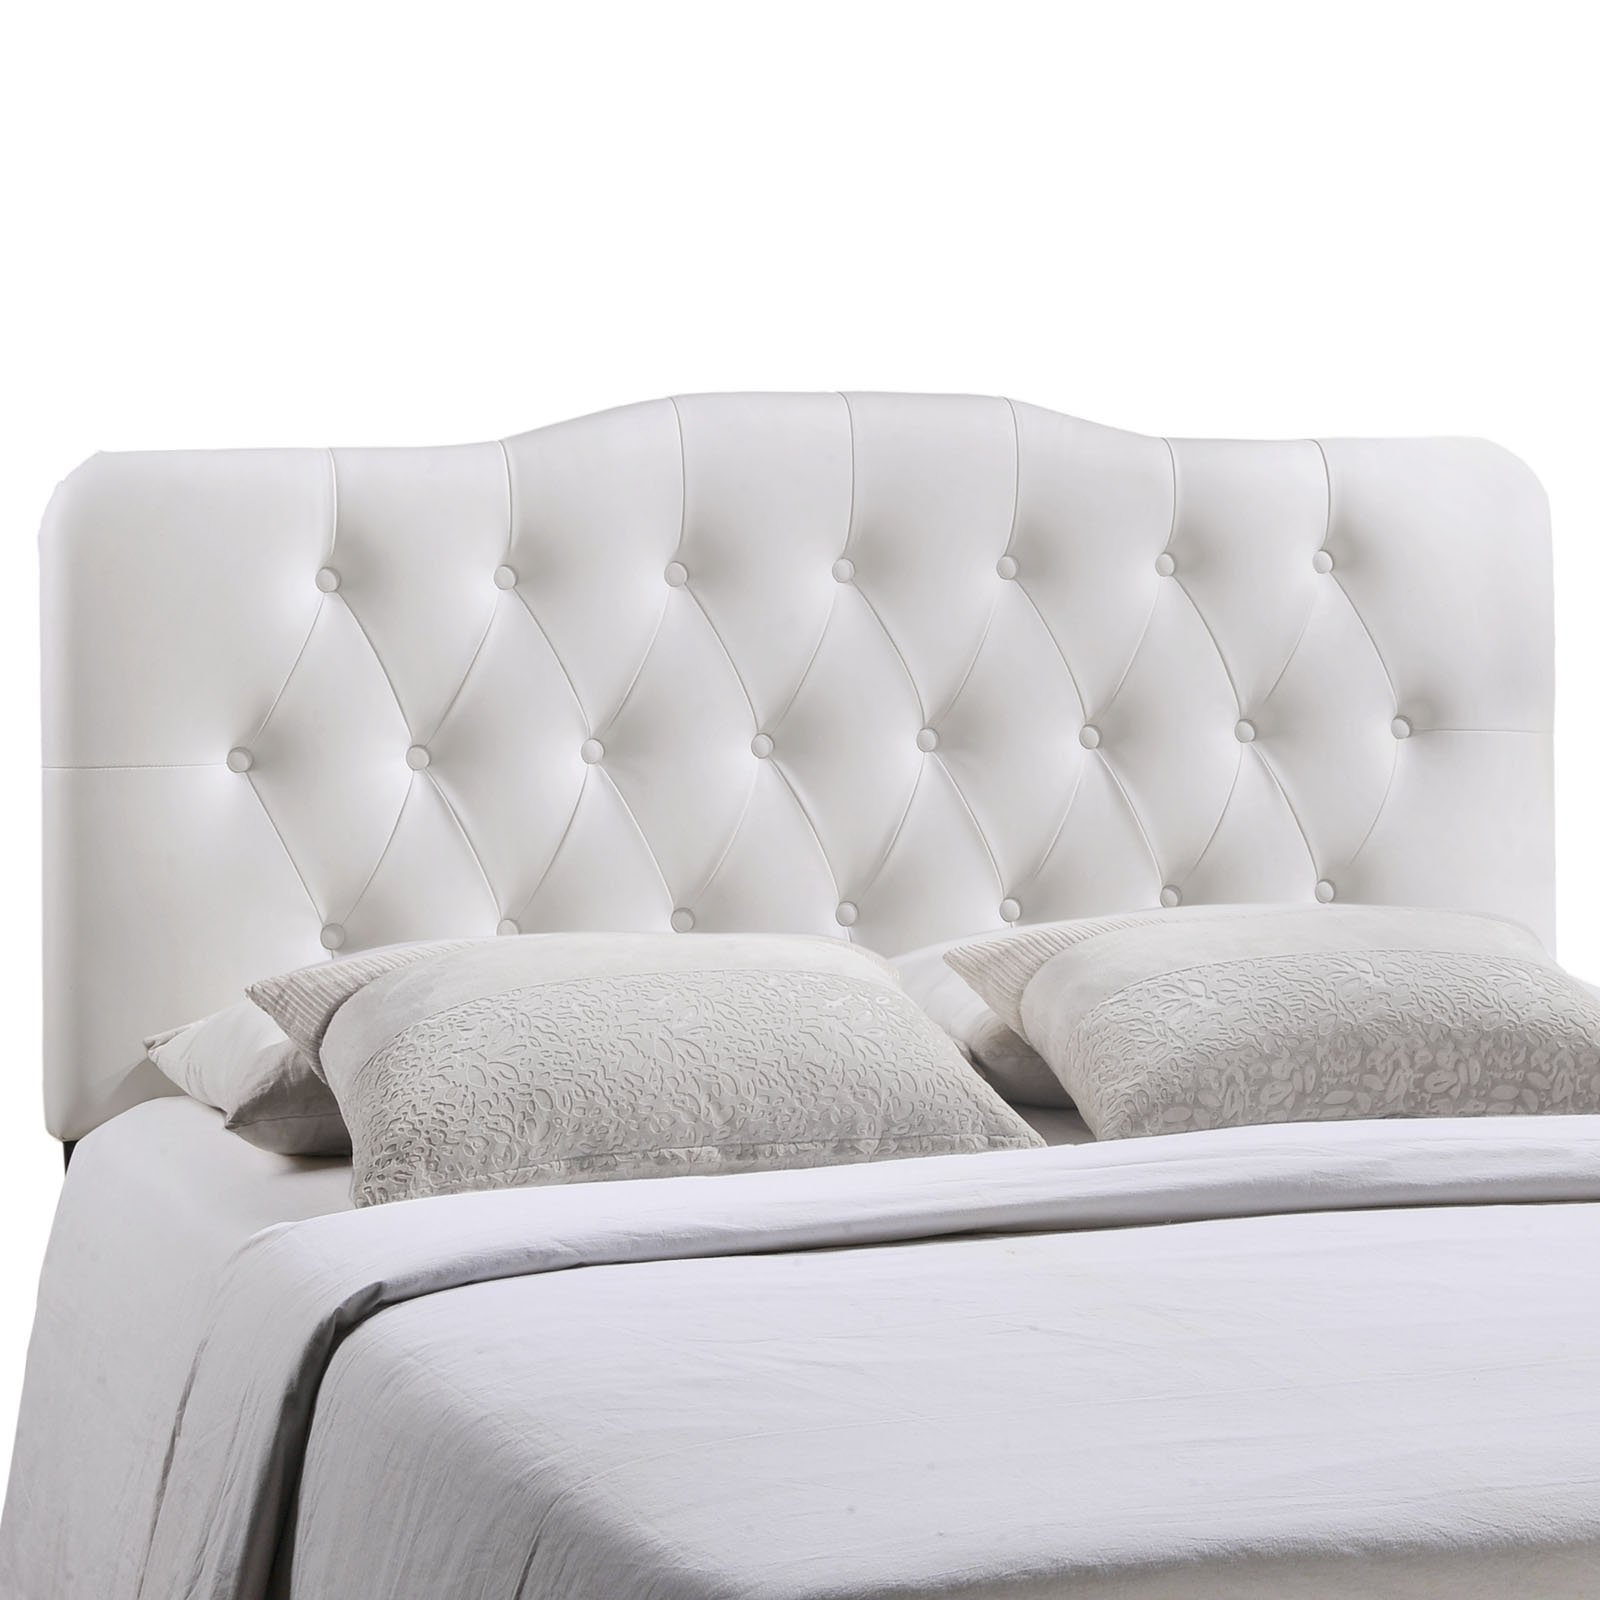 Modway Annabel Tufted Button Faux Leather Upholstered Queen Headboard in White